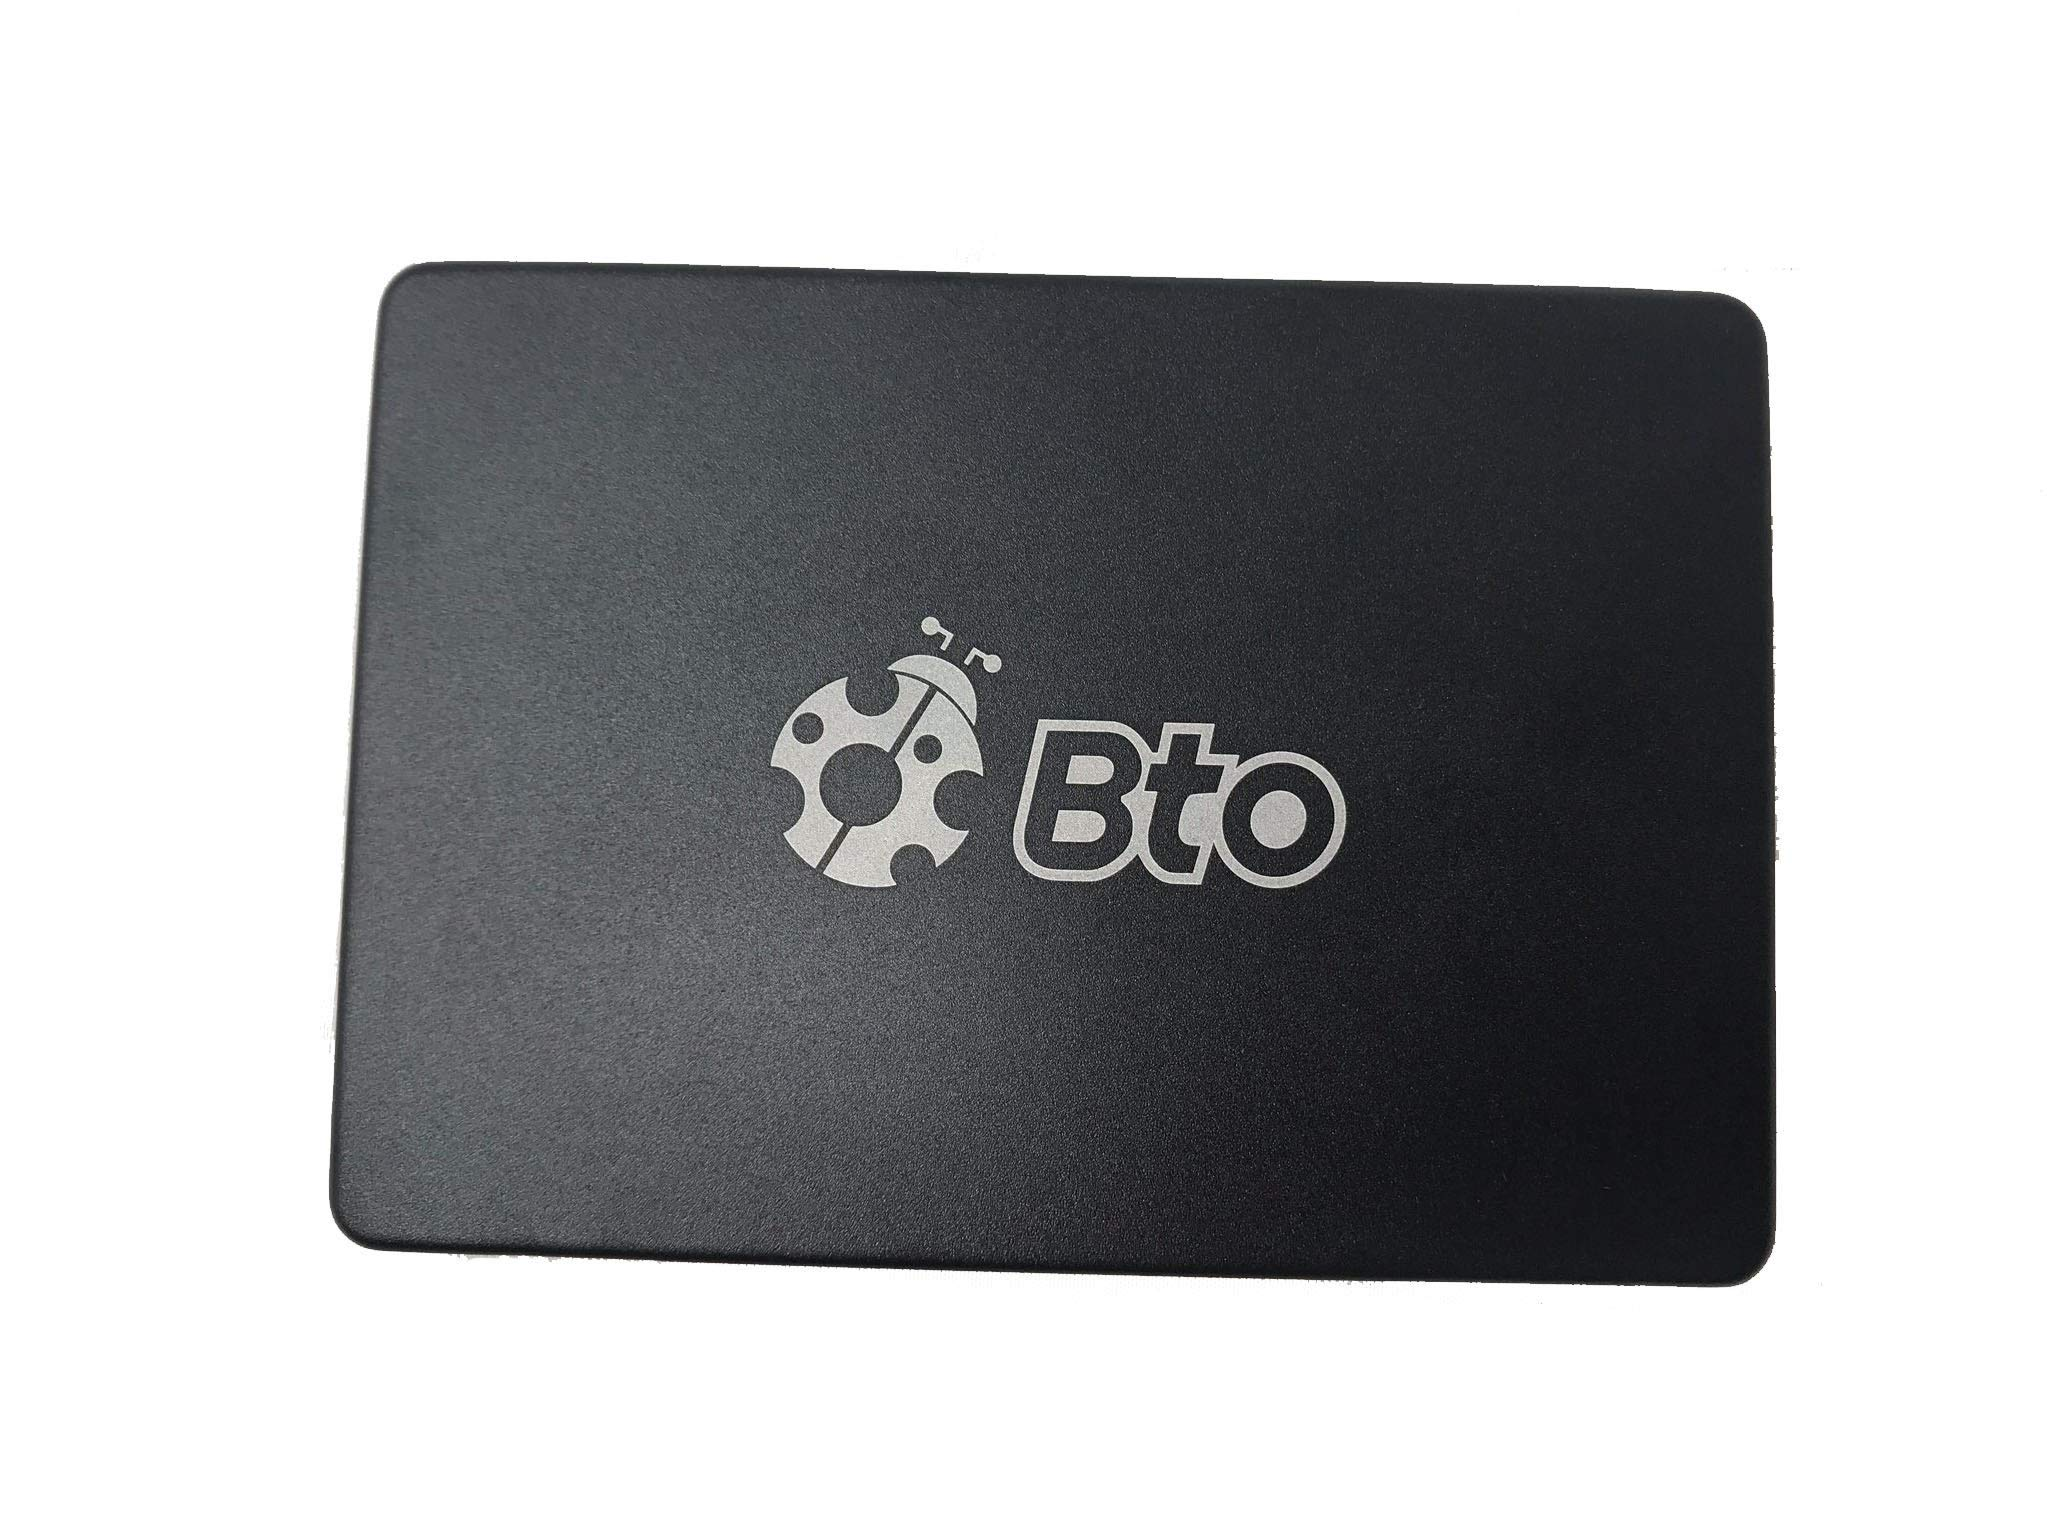 BTO (S400) 480GB Solid State Drive, SATA 6Gb/s, Quality and Value Optimized SSD by BTO